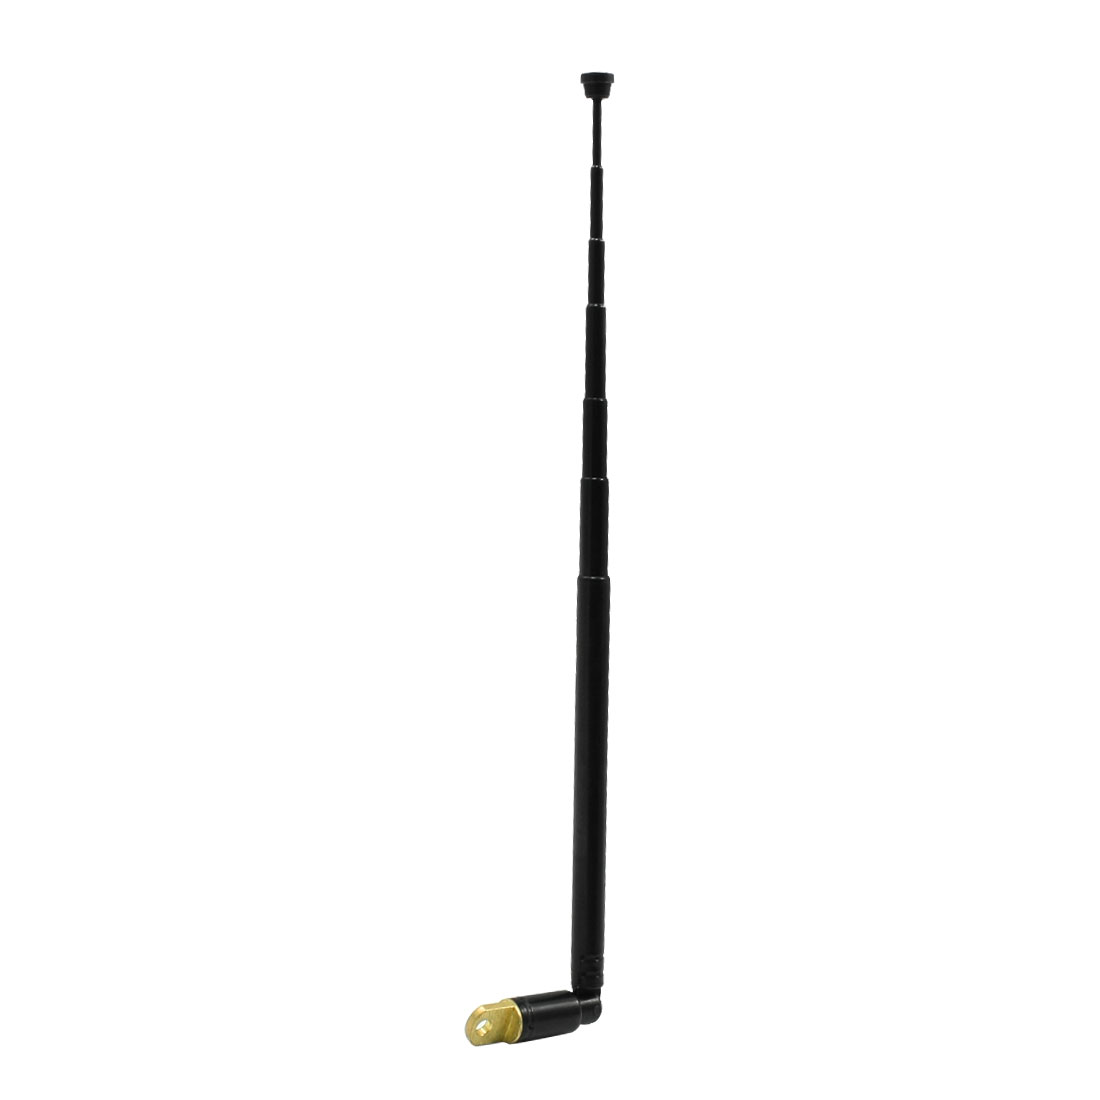 Rotating 6 Sections TV Telescopic Antenna Aerial 38cm for Car